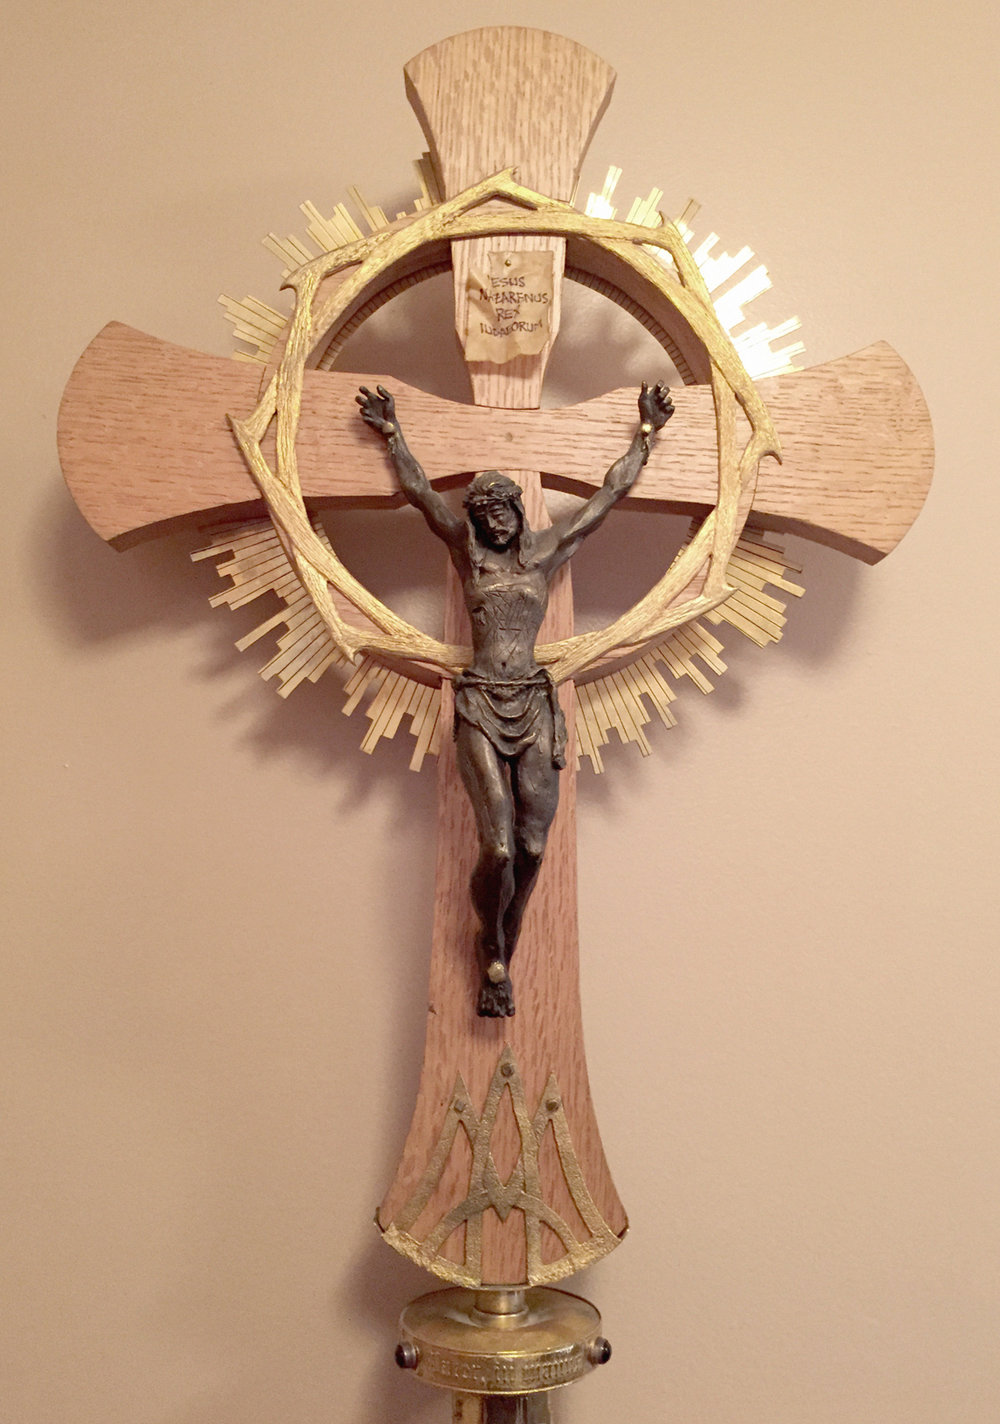 St. Lawrence Center's Processional Cross